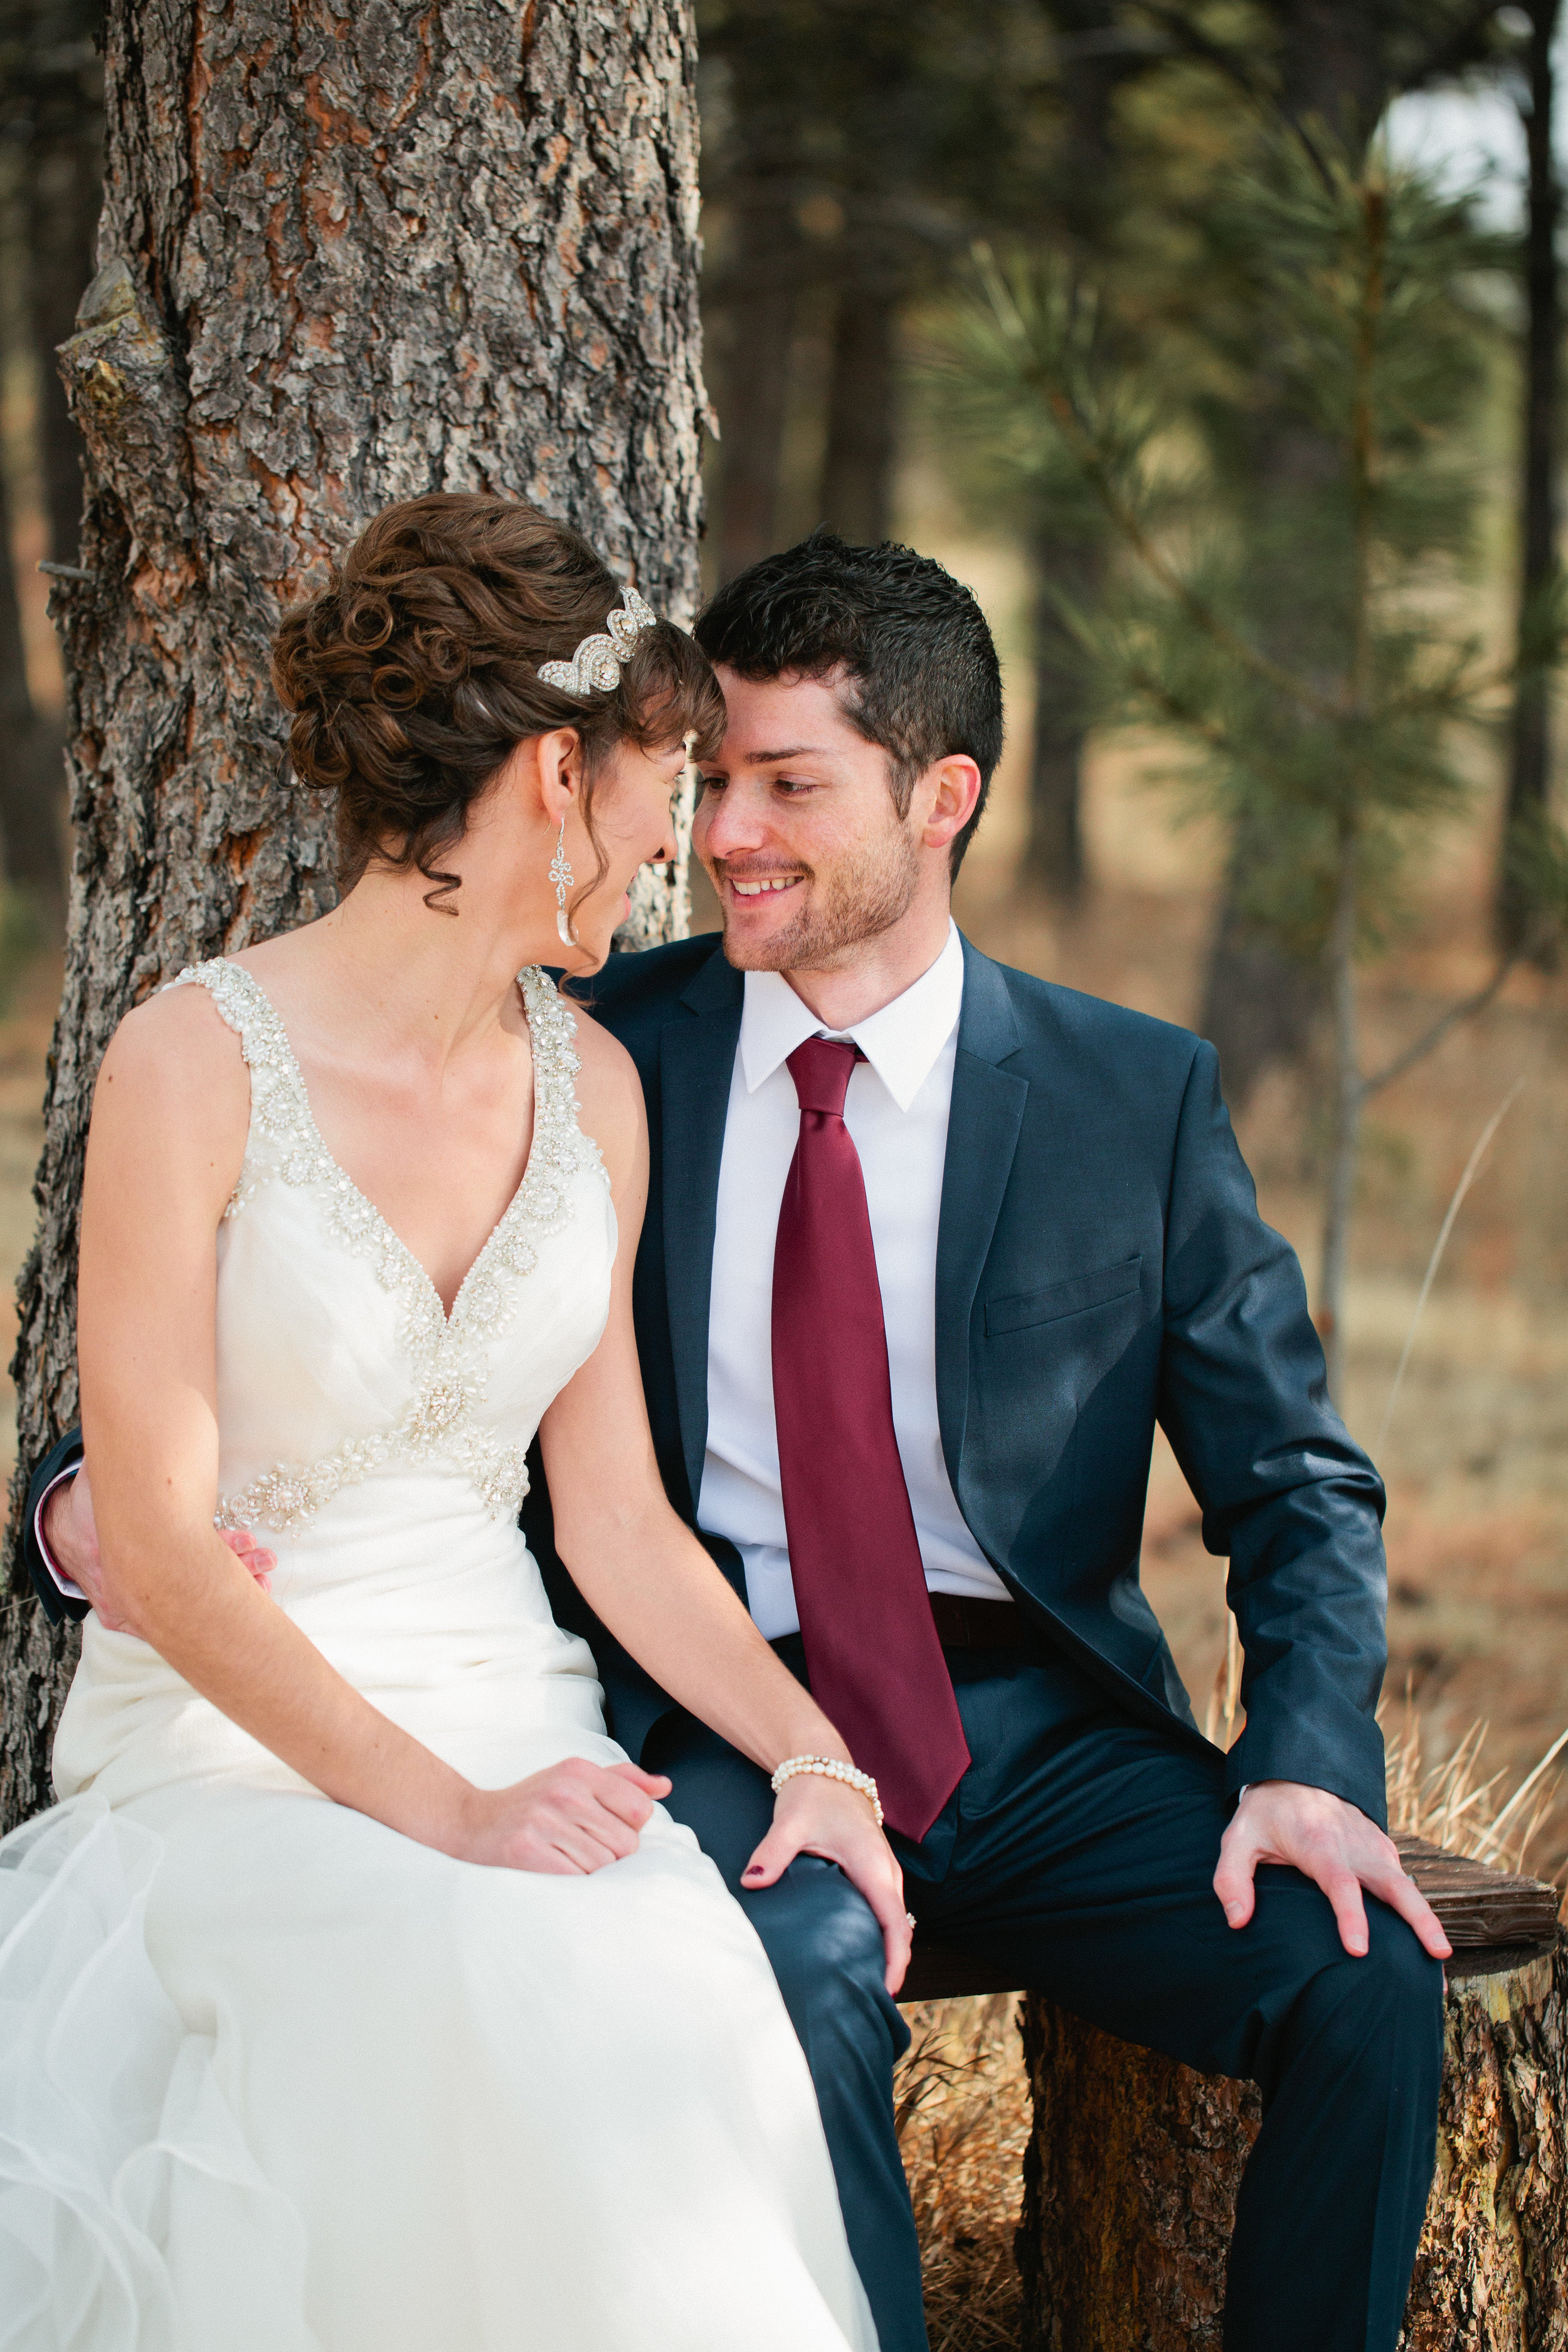 We are Colorado  wedding photographers  & portrait photographers who believe in capturing fun and authentic moments